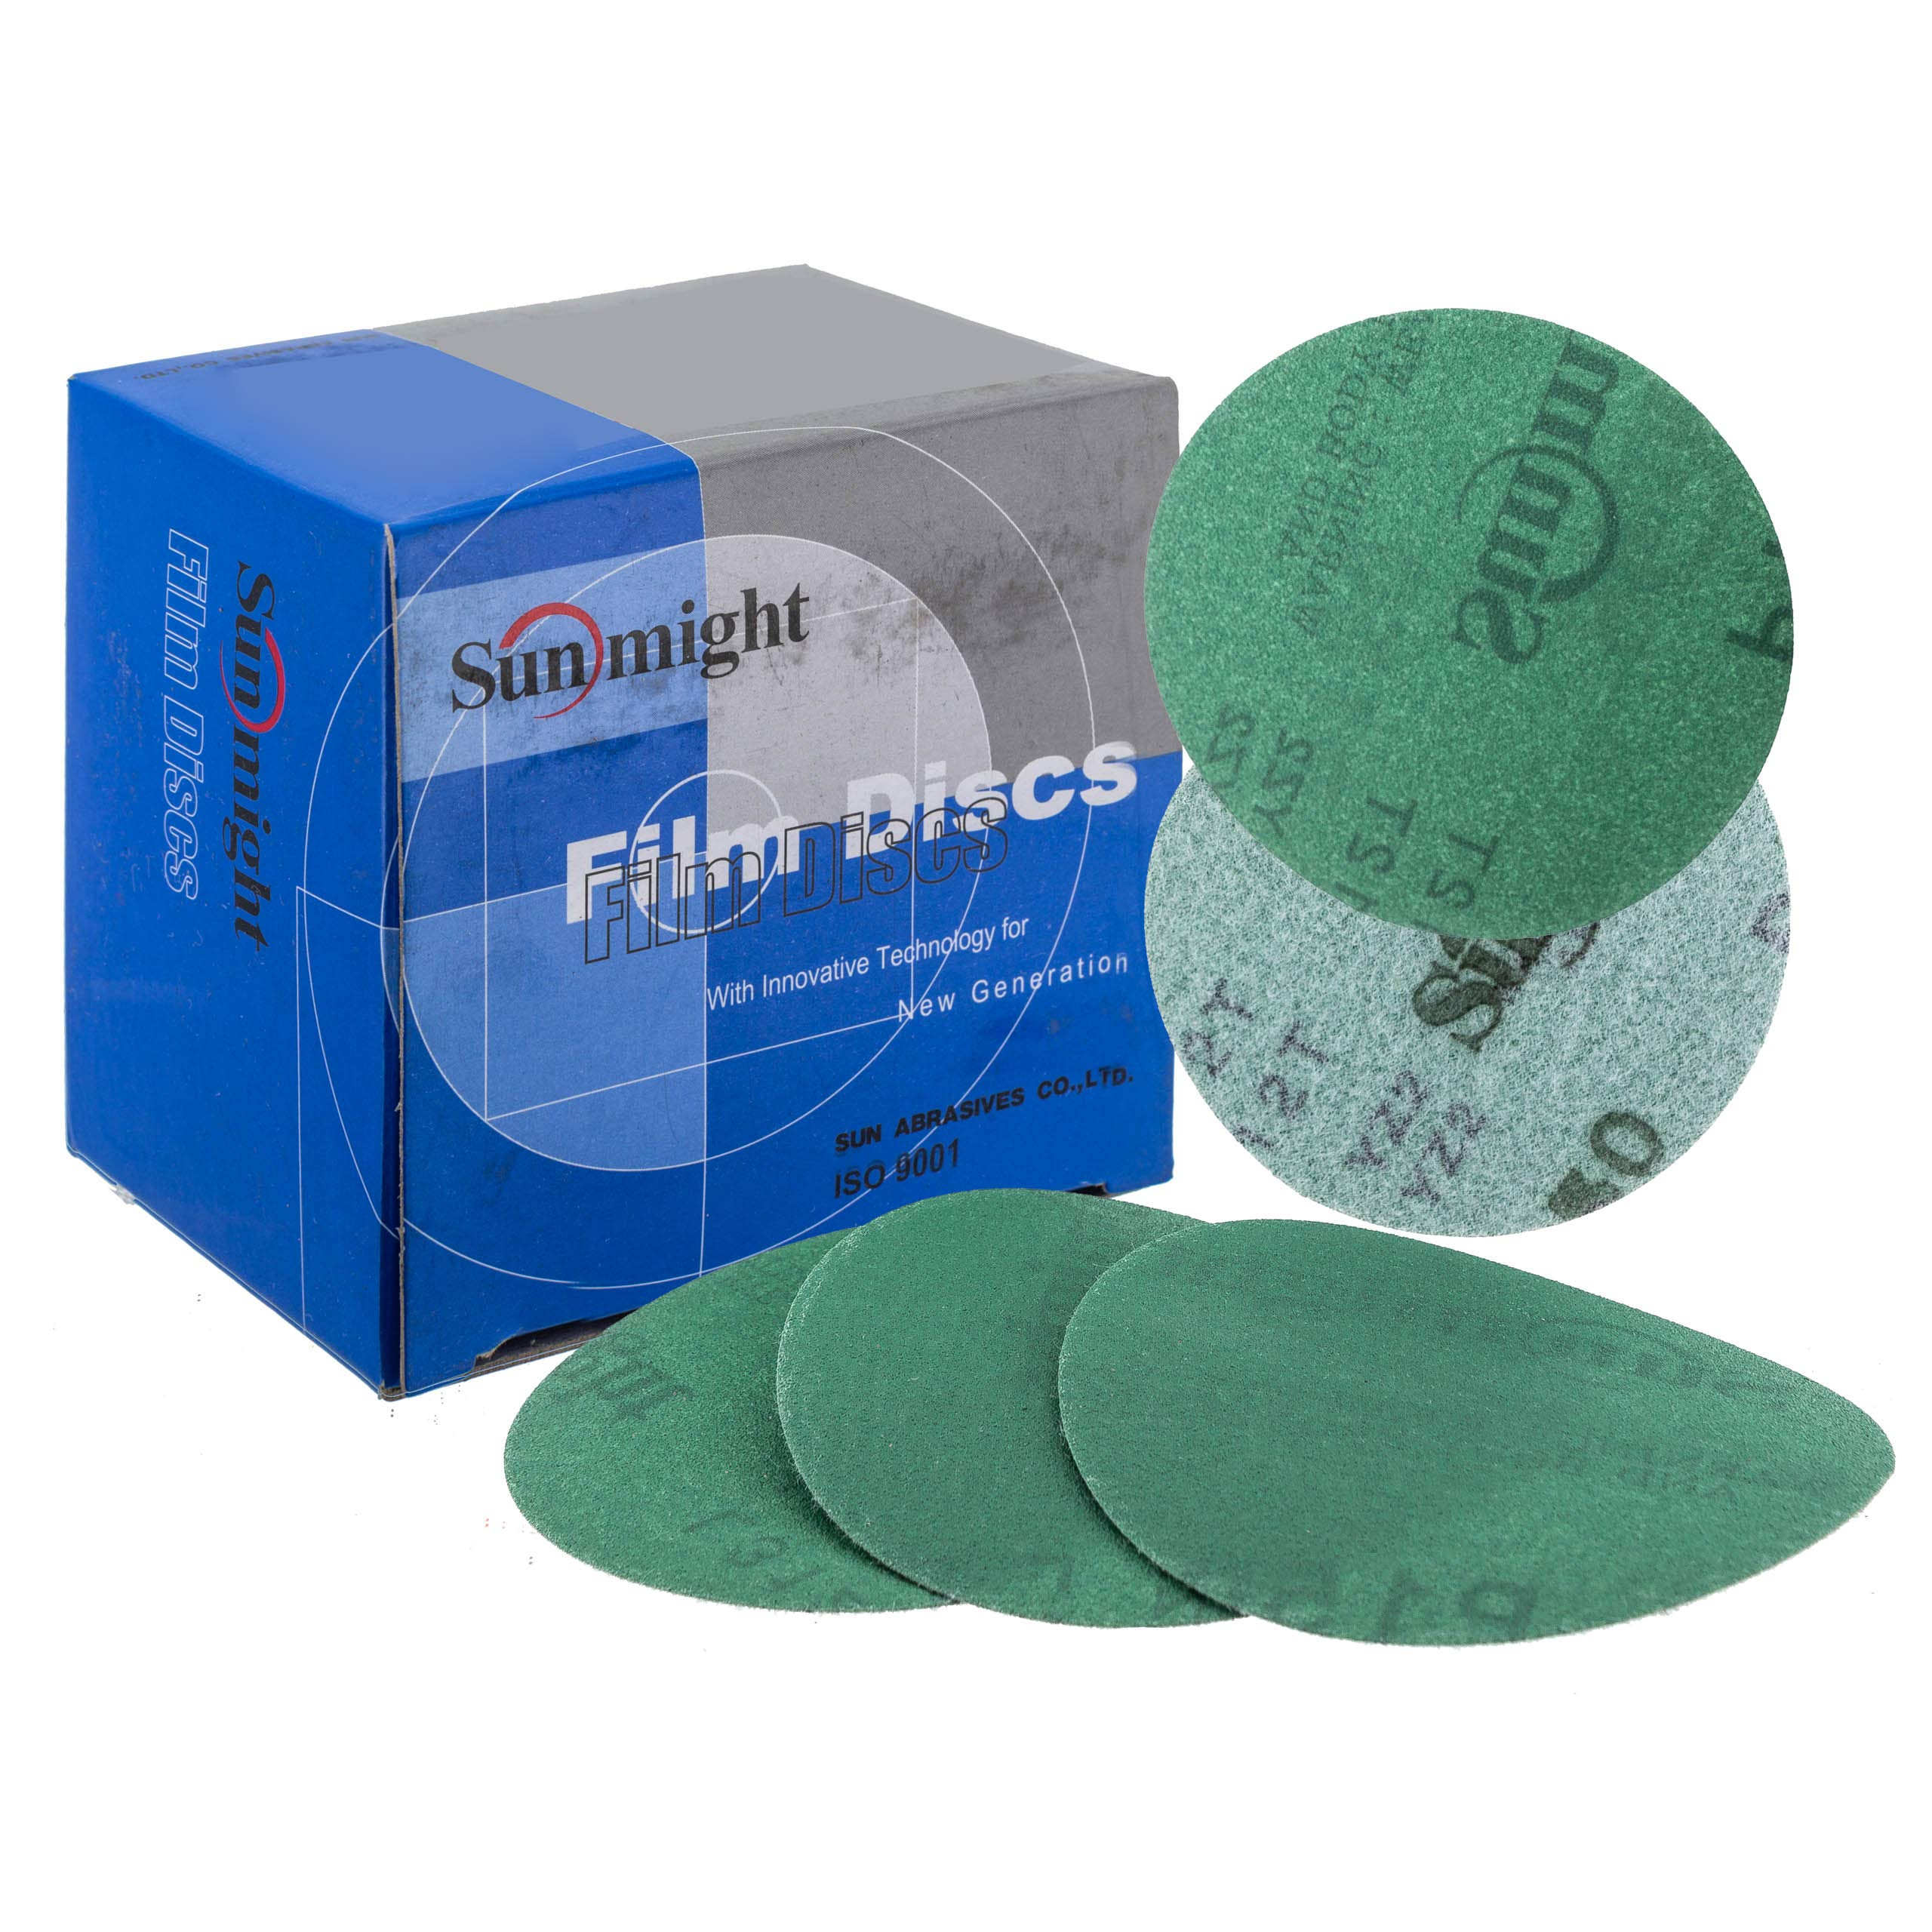 Sunmight 54211 1 Pack 3'' No Hole Velcro Disc (Film Grit 220)